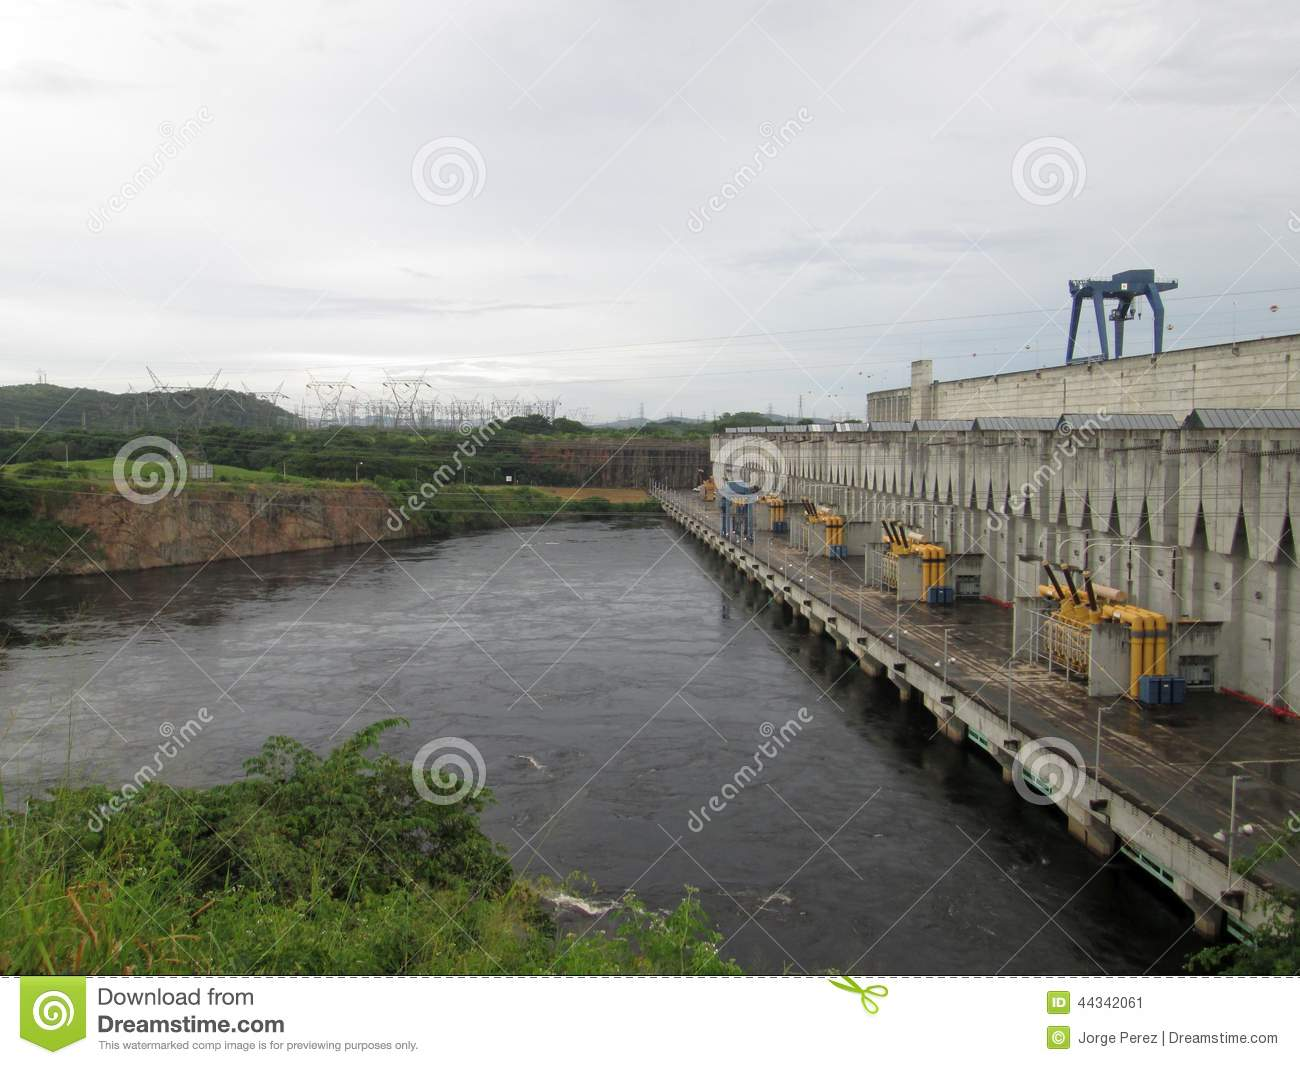 hydroelectric power plant stock image image of plant 44342061 hydroelectric power plant stock image image of plant 44342061